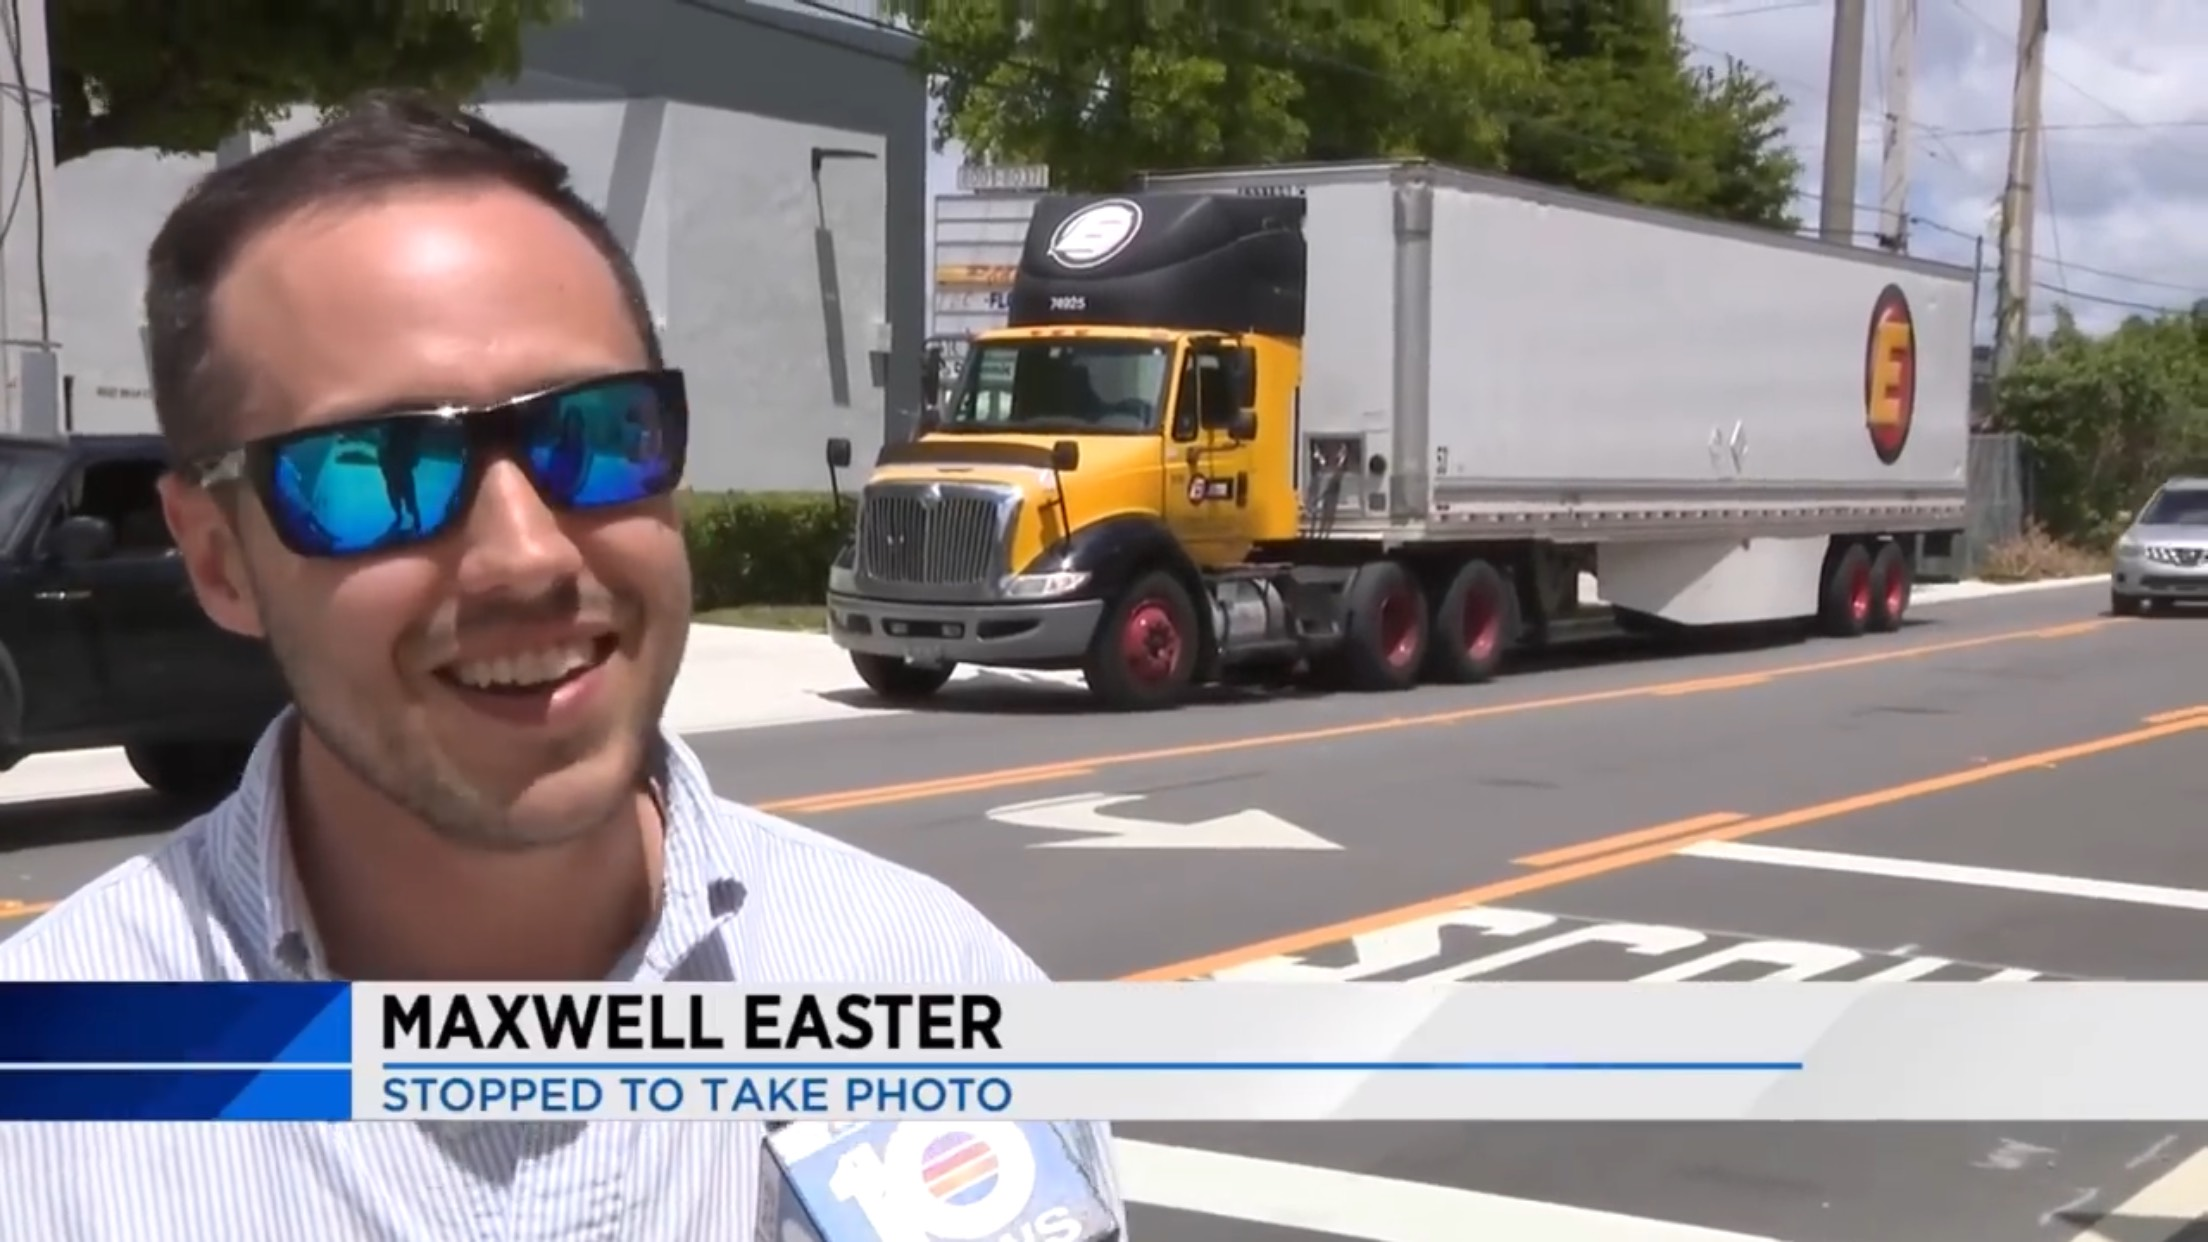 Maxwell Easter: Stopped To Take Photo